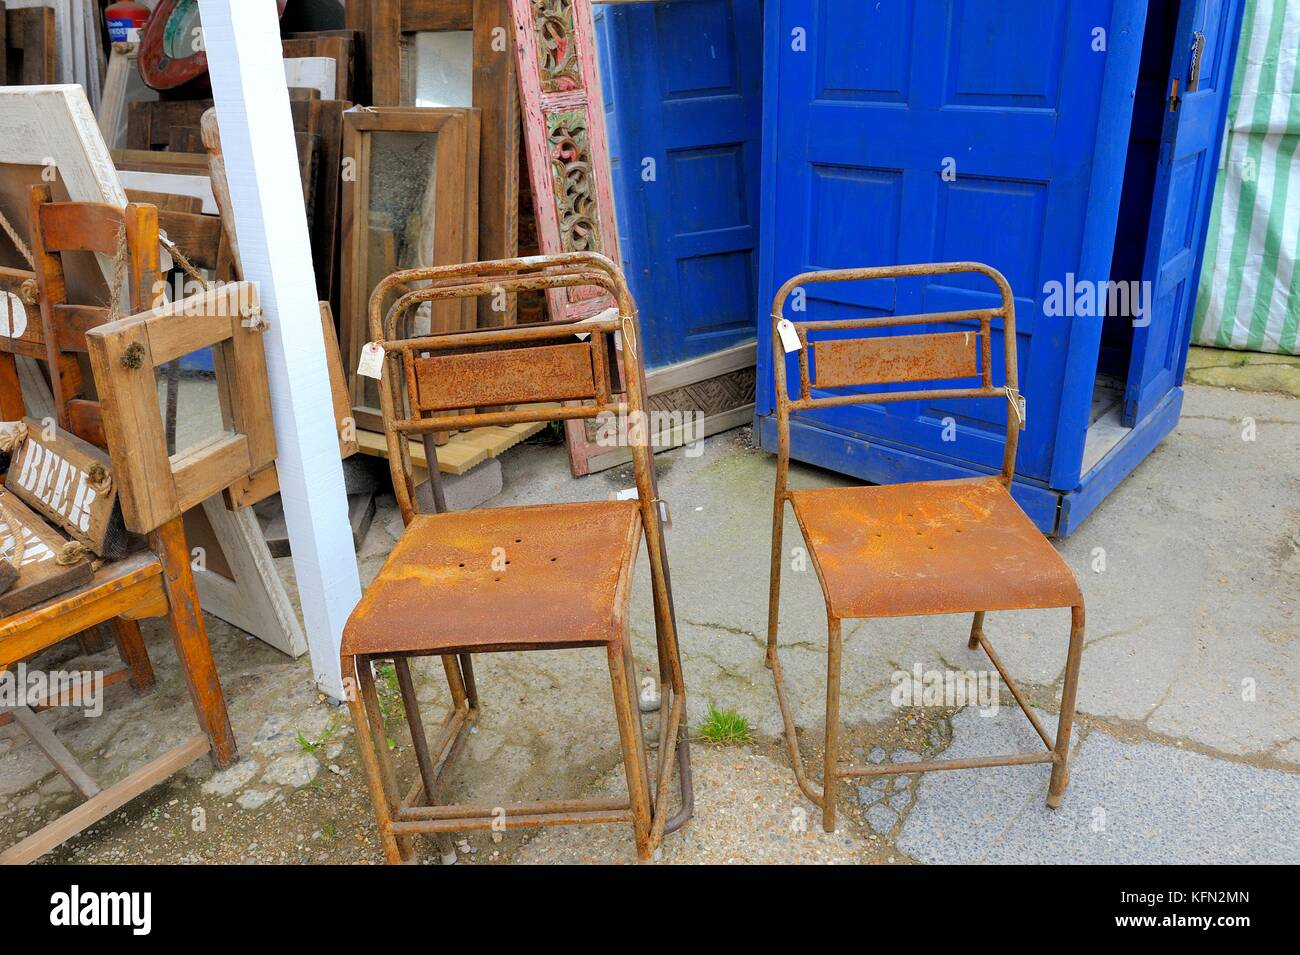 Rusty chairs for sale on a 2nd hand market stall - Stock Image